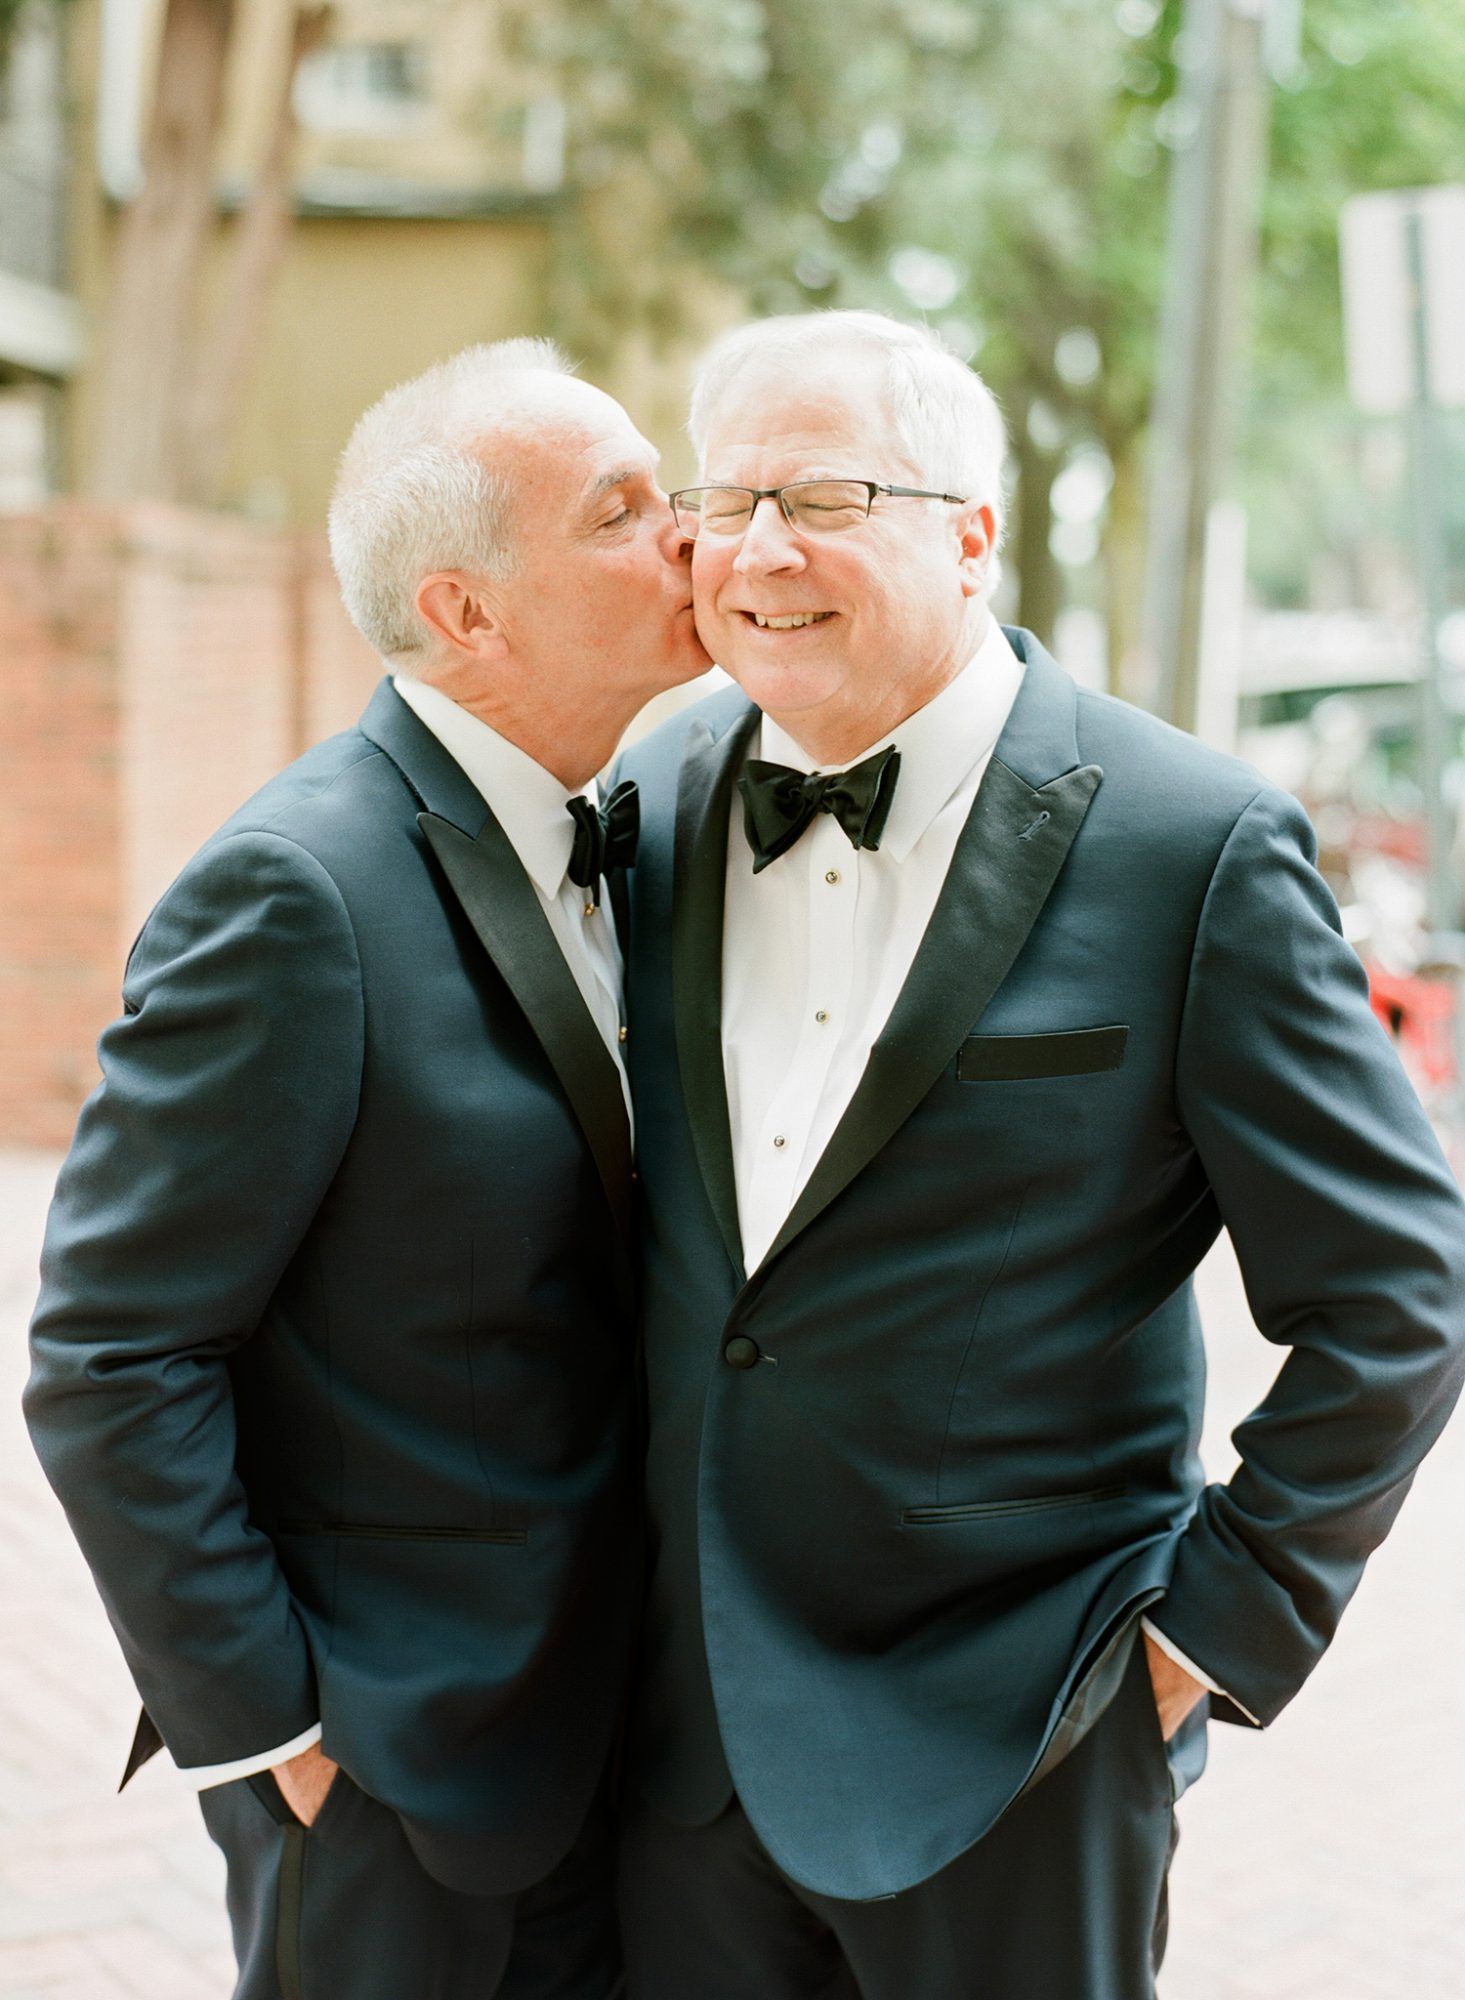 How endearing is this sweet snapshot of two grooms celebrating their special occasion?